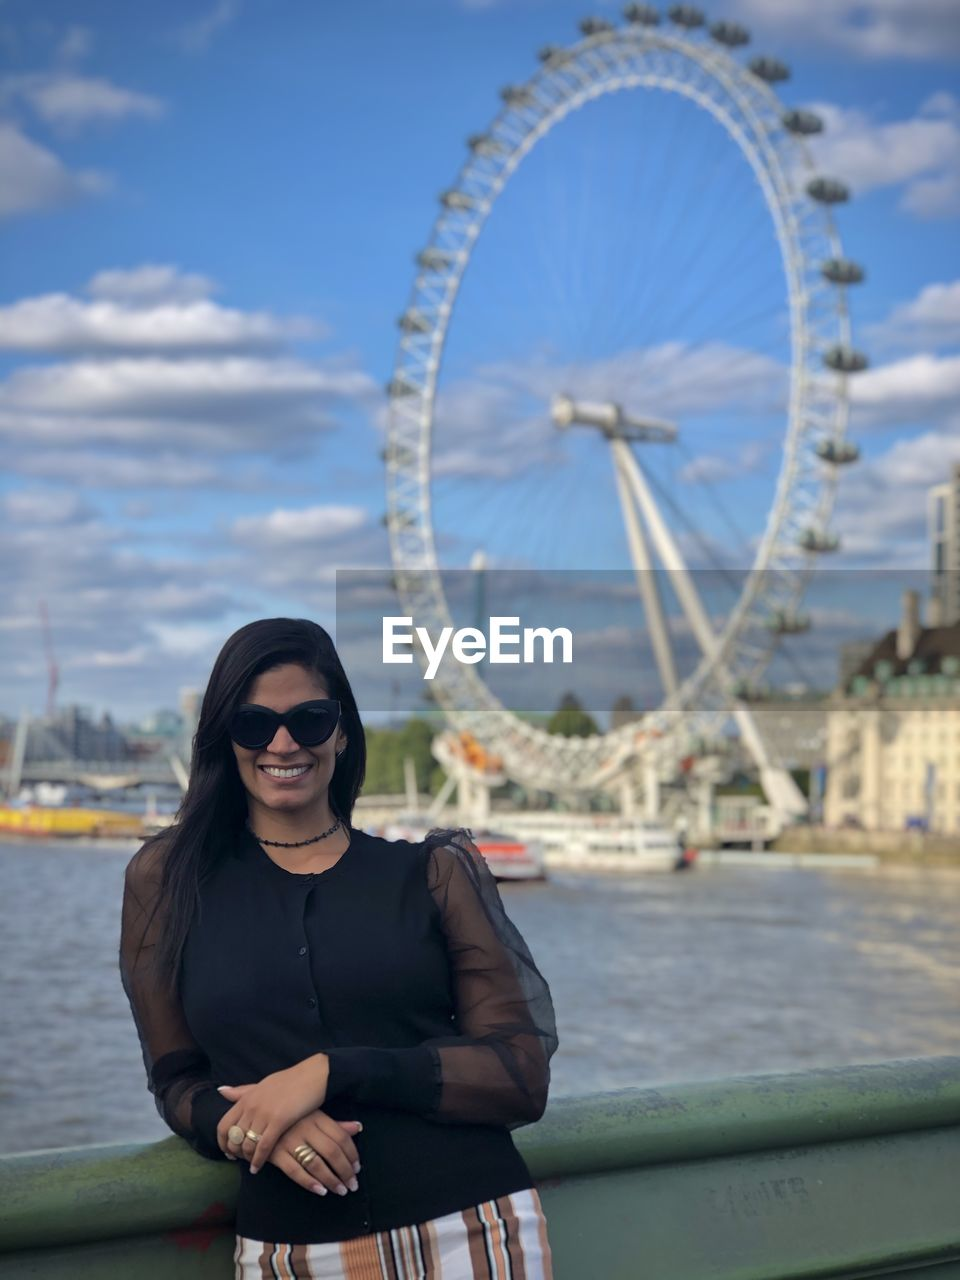 Portrait of woman wearing sunglasses against ferris wheel by river in city